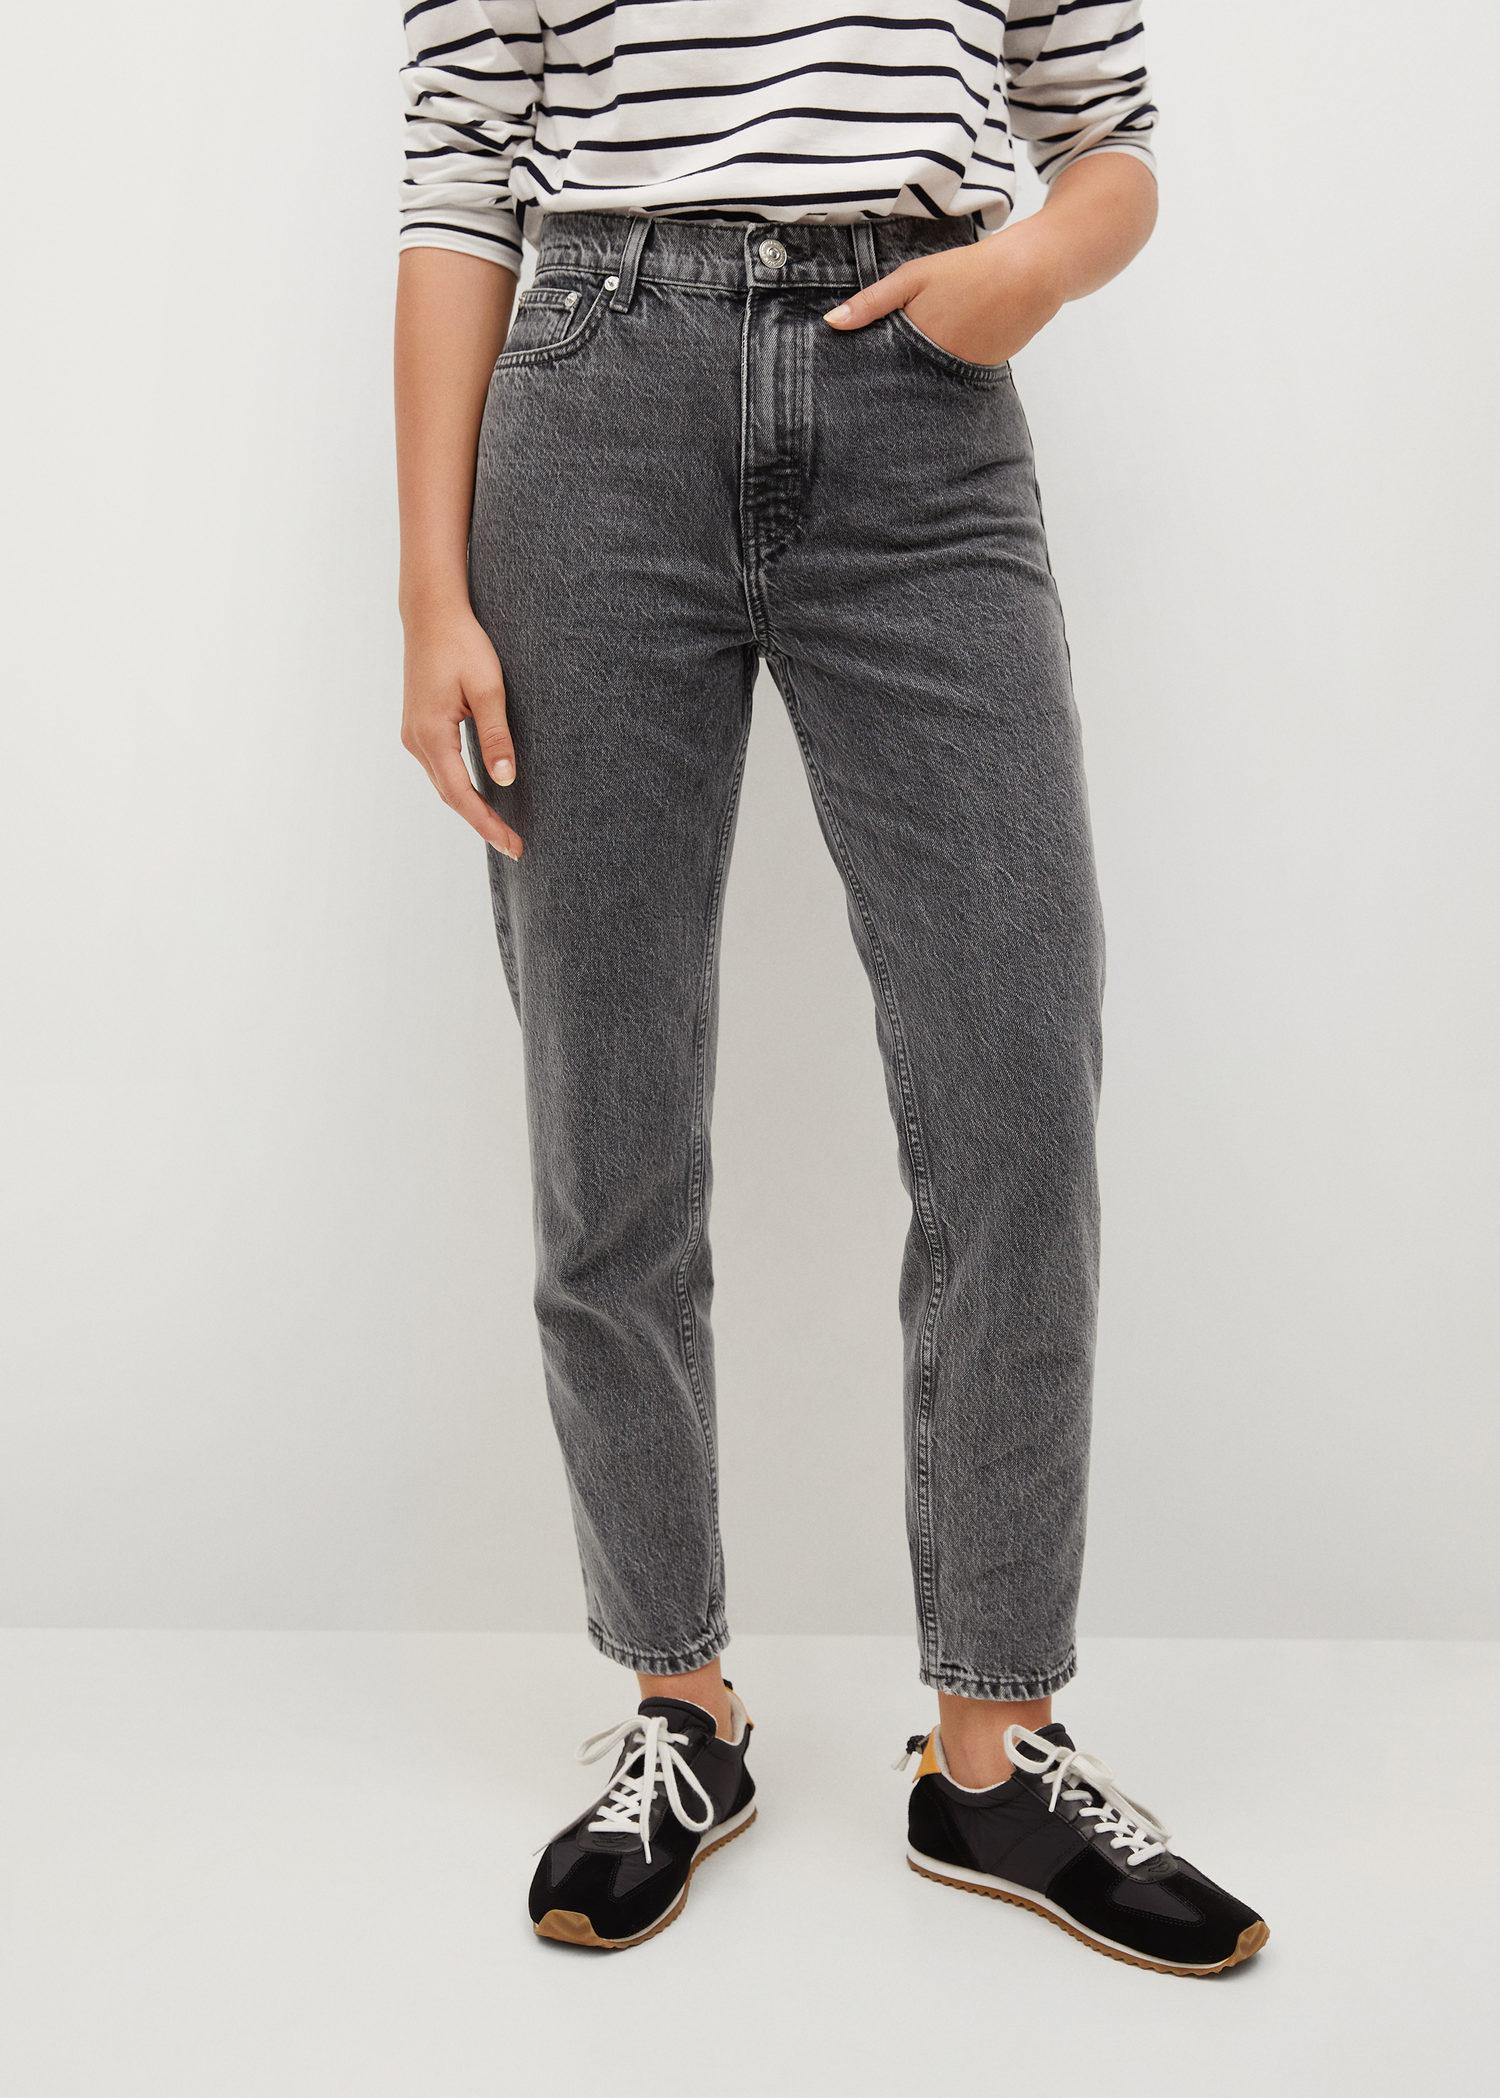 100% cotton mom-fit jeans